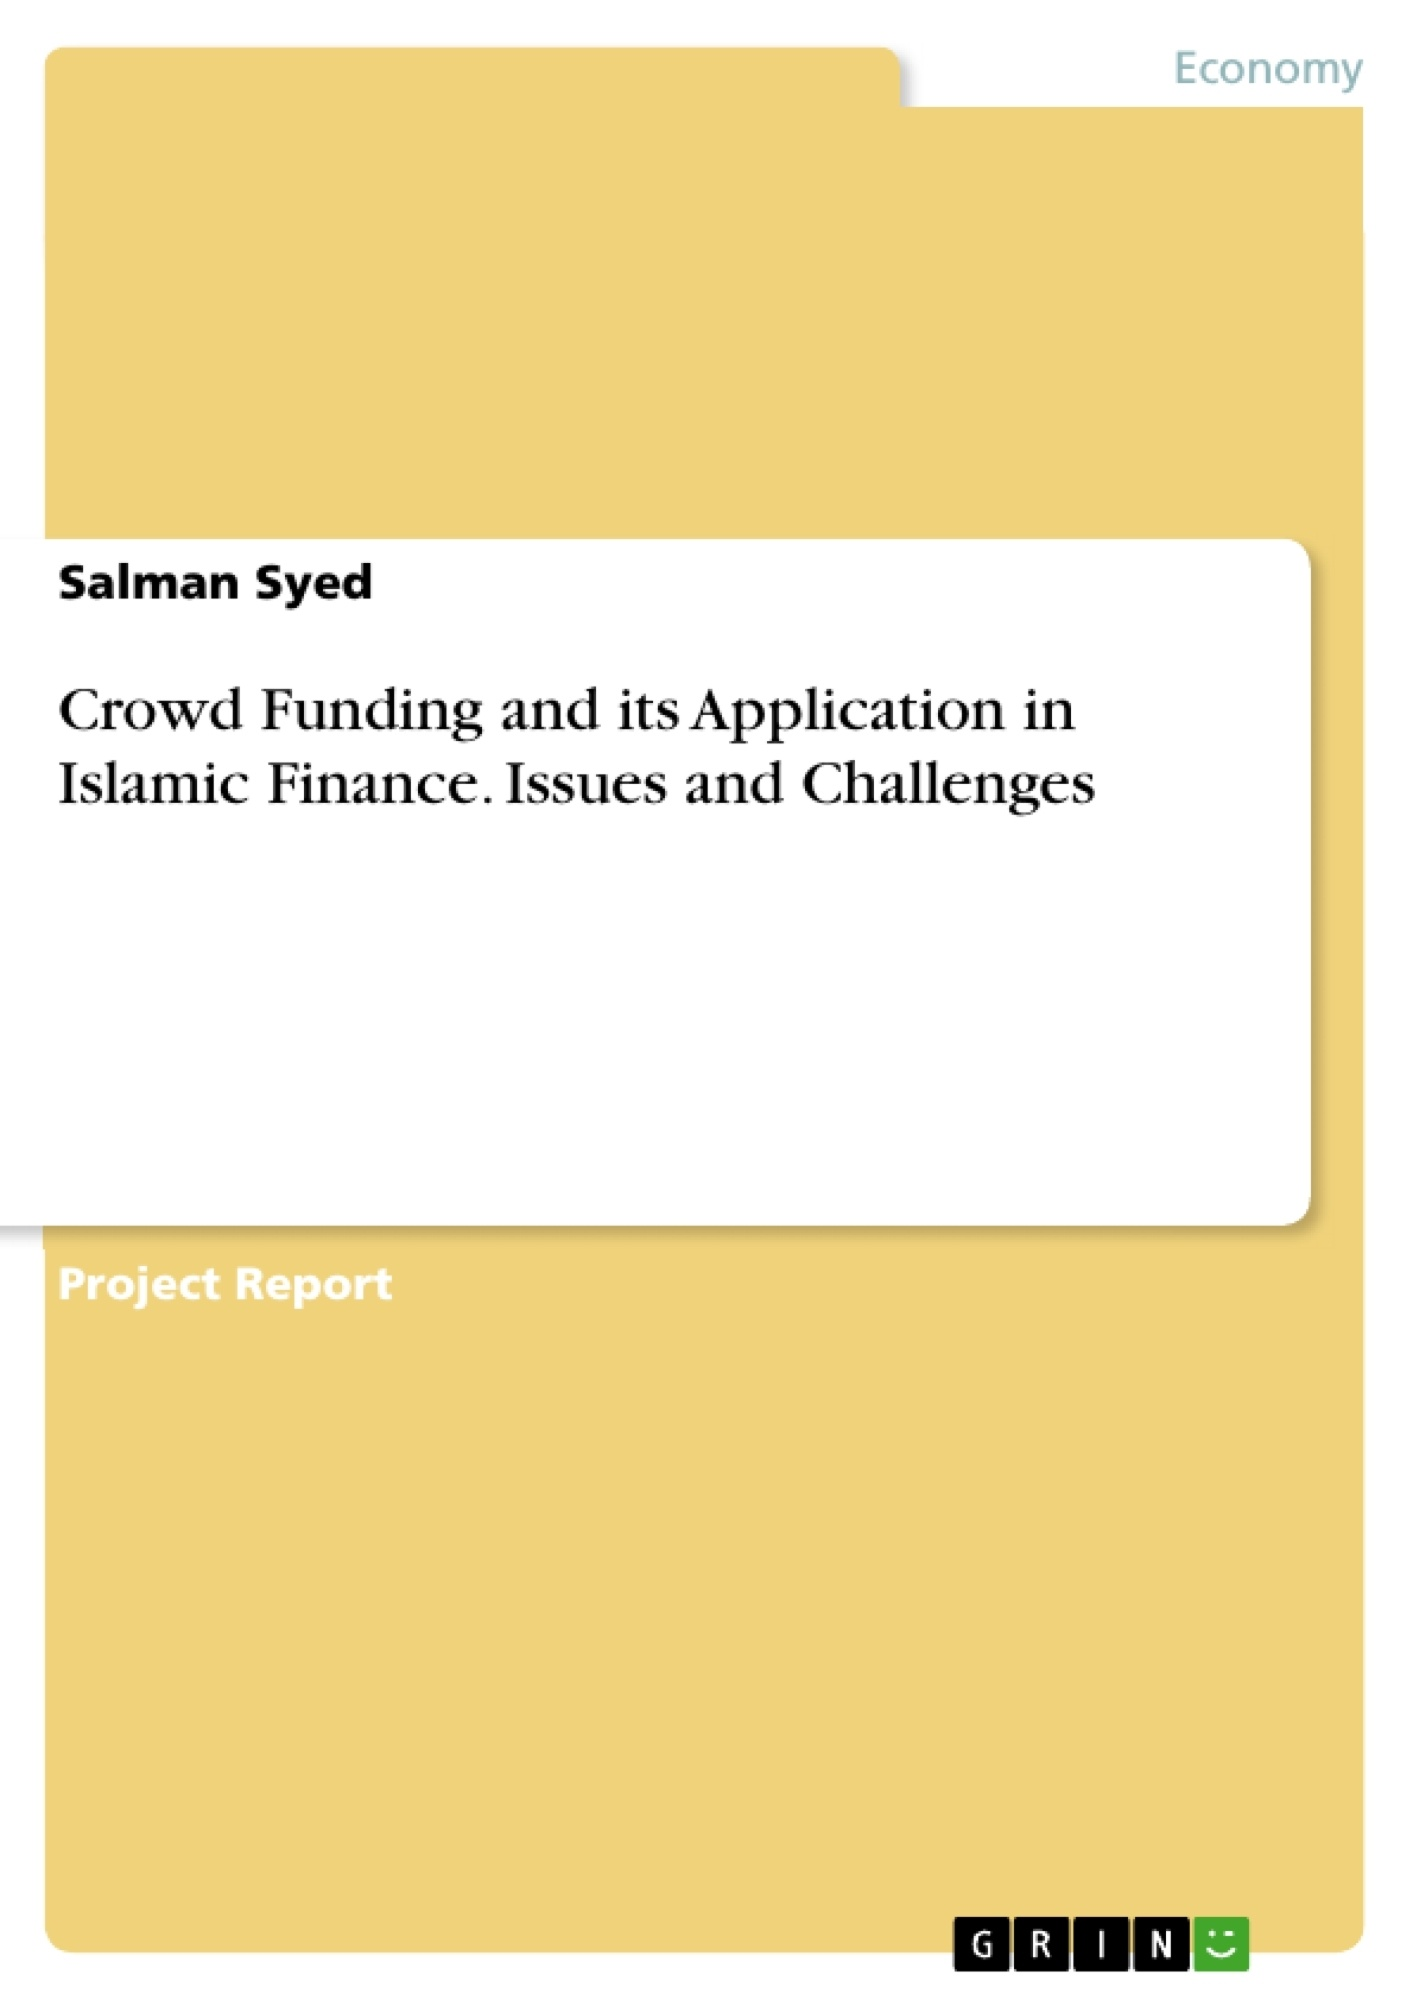 Title: Crowd Funding and its Application in Islamic Finance. Issues and Challenges